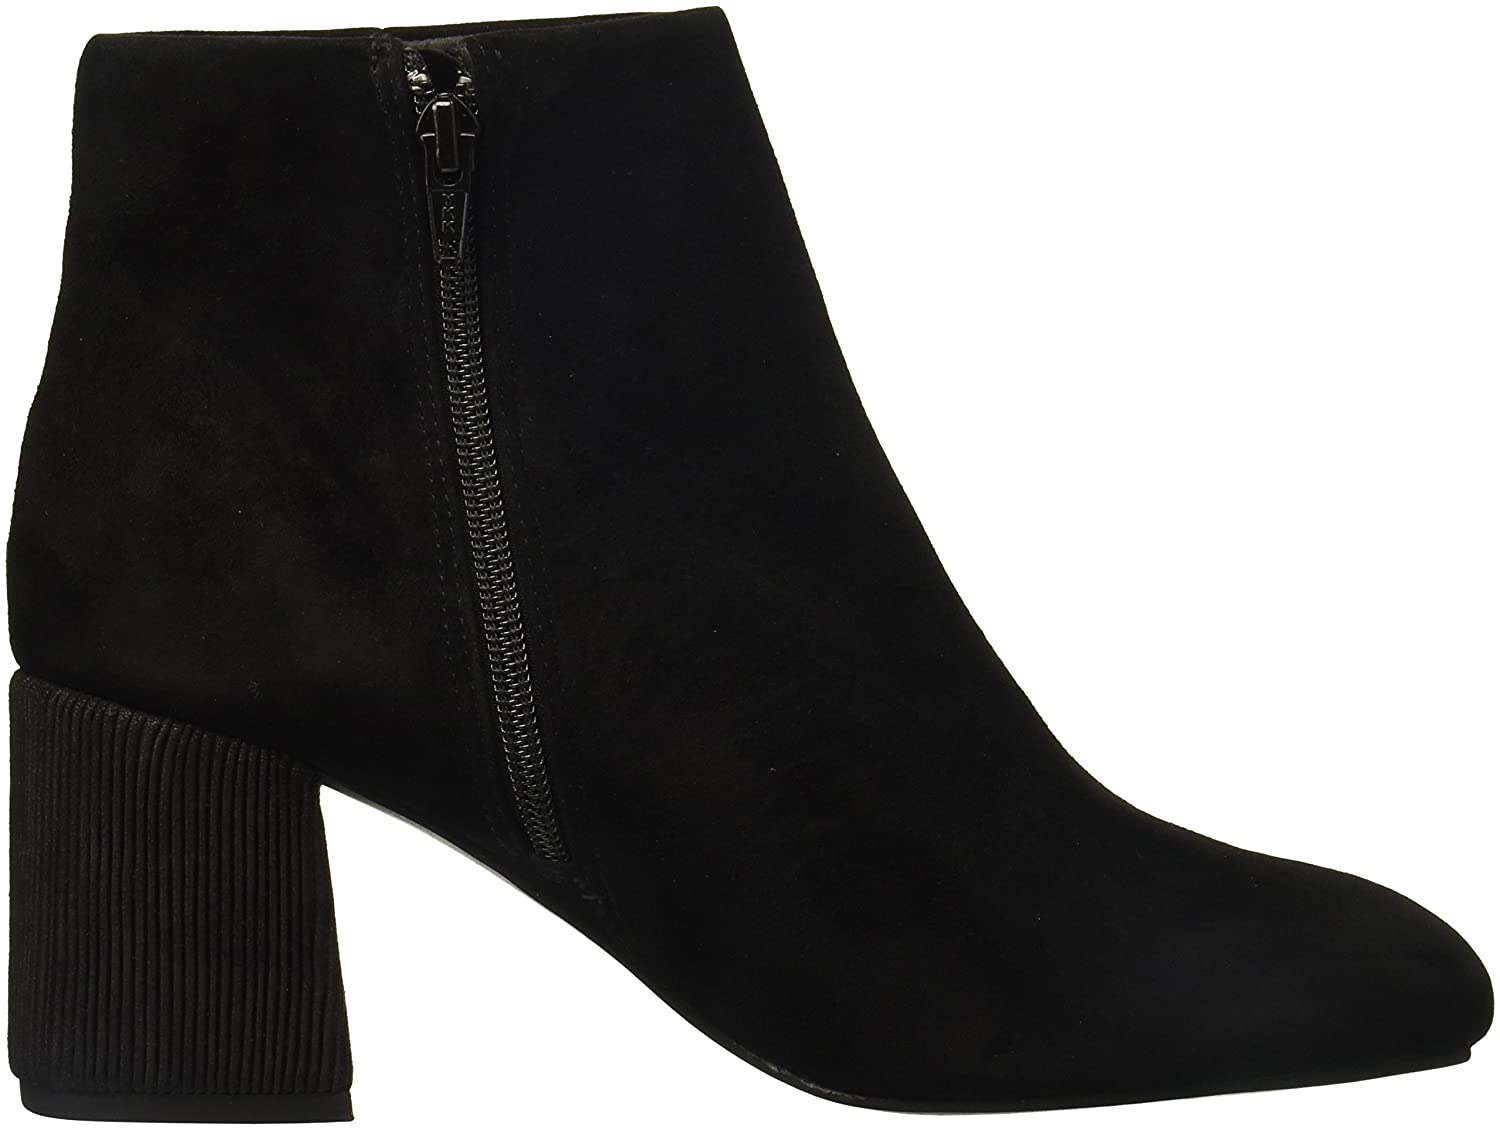 Seychelles Women's Audition B(M) Ankle Boot B06XDZKL4L 8 B(M) Audition US|Black f54834